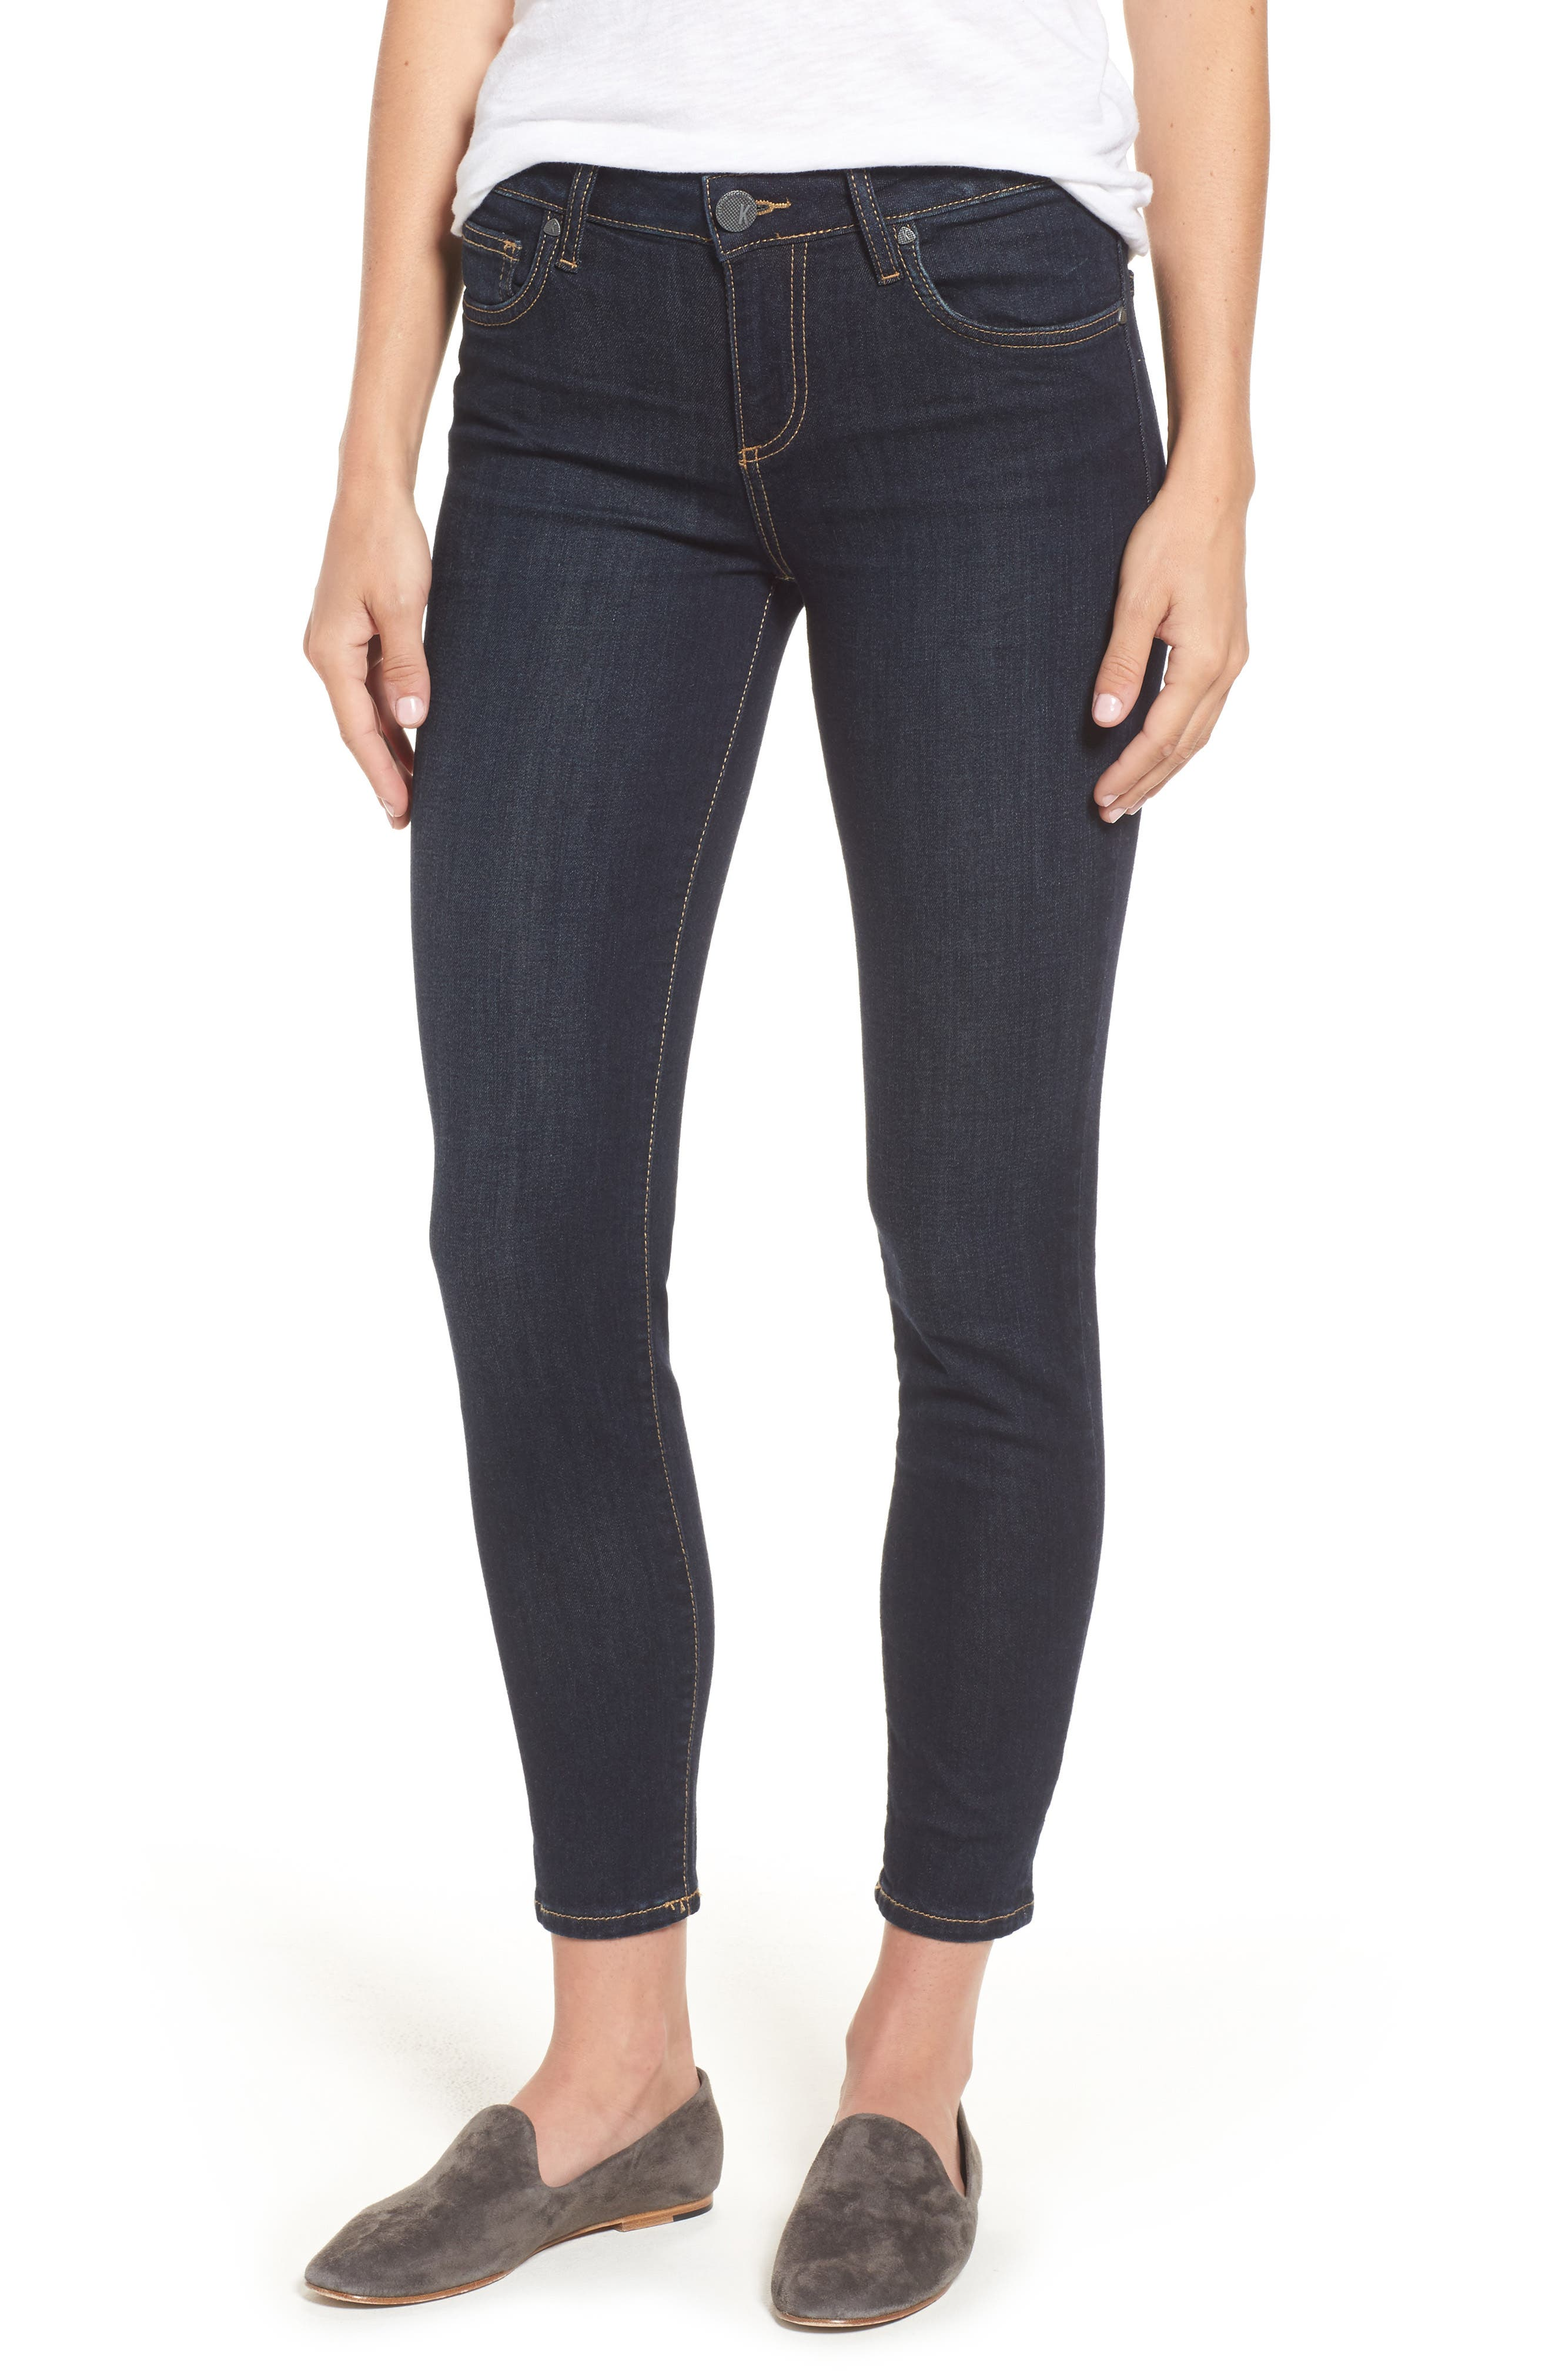 Diana Kurvy Stretch Ankle Jeans,                         Main,                         color, Limitless